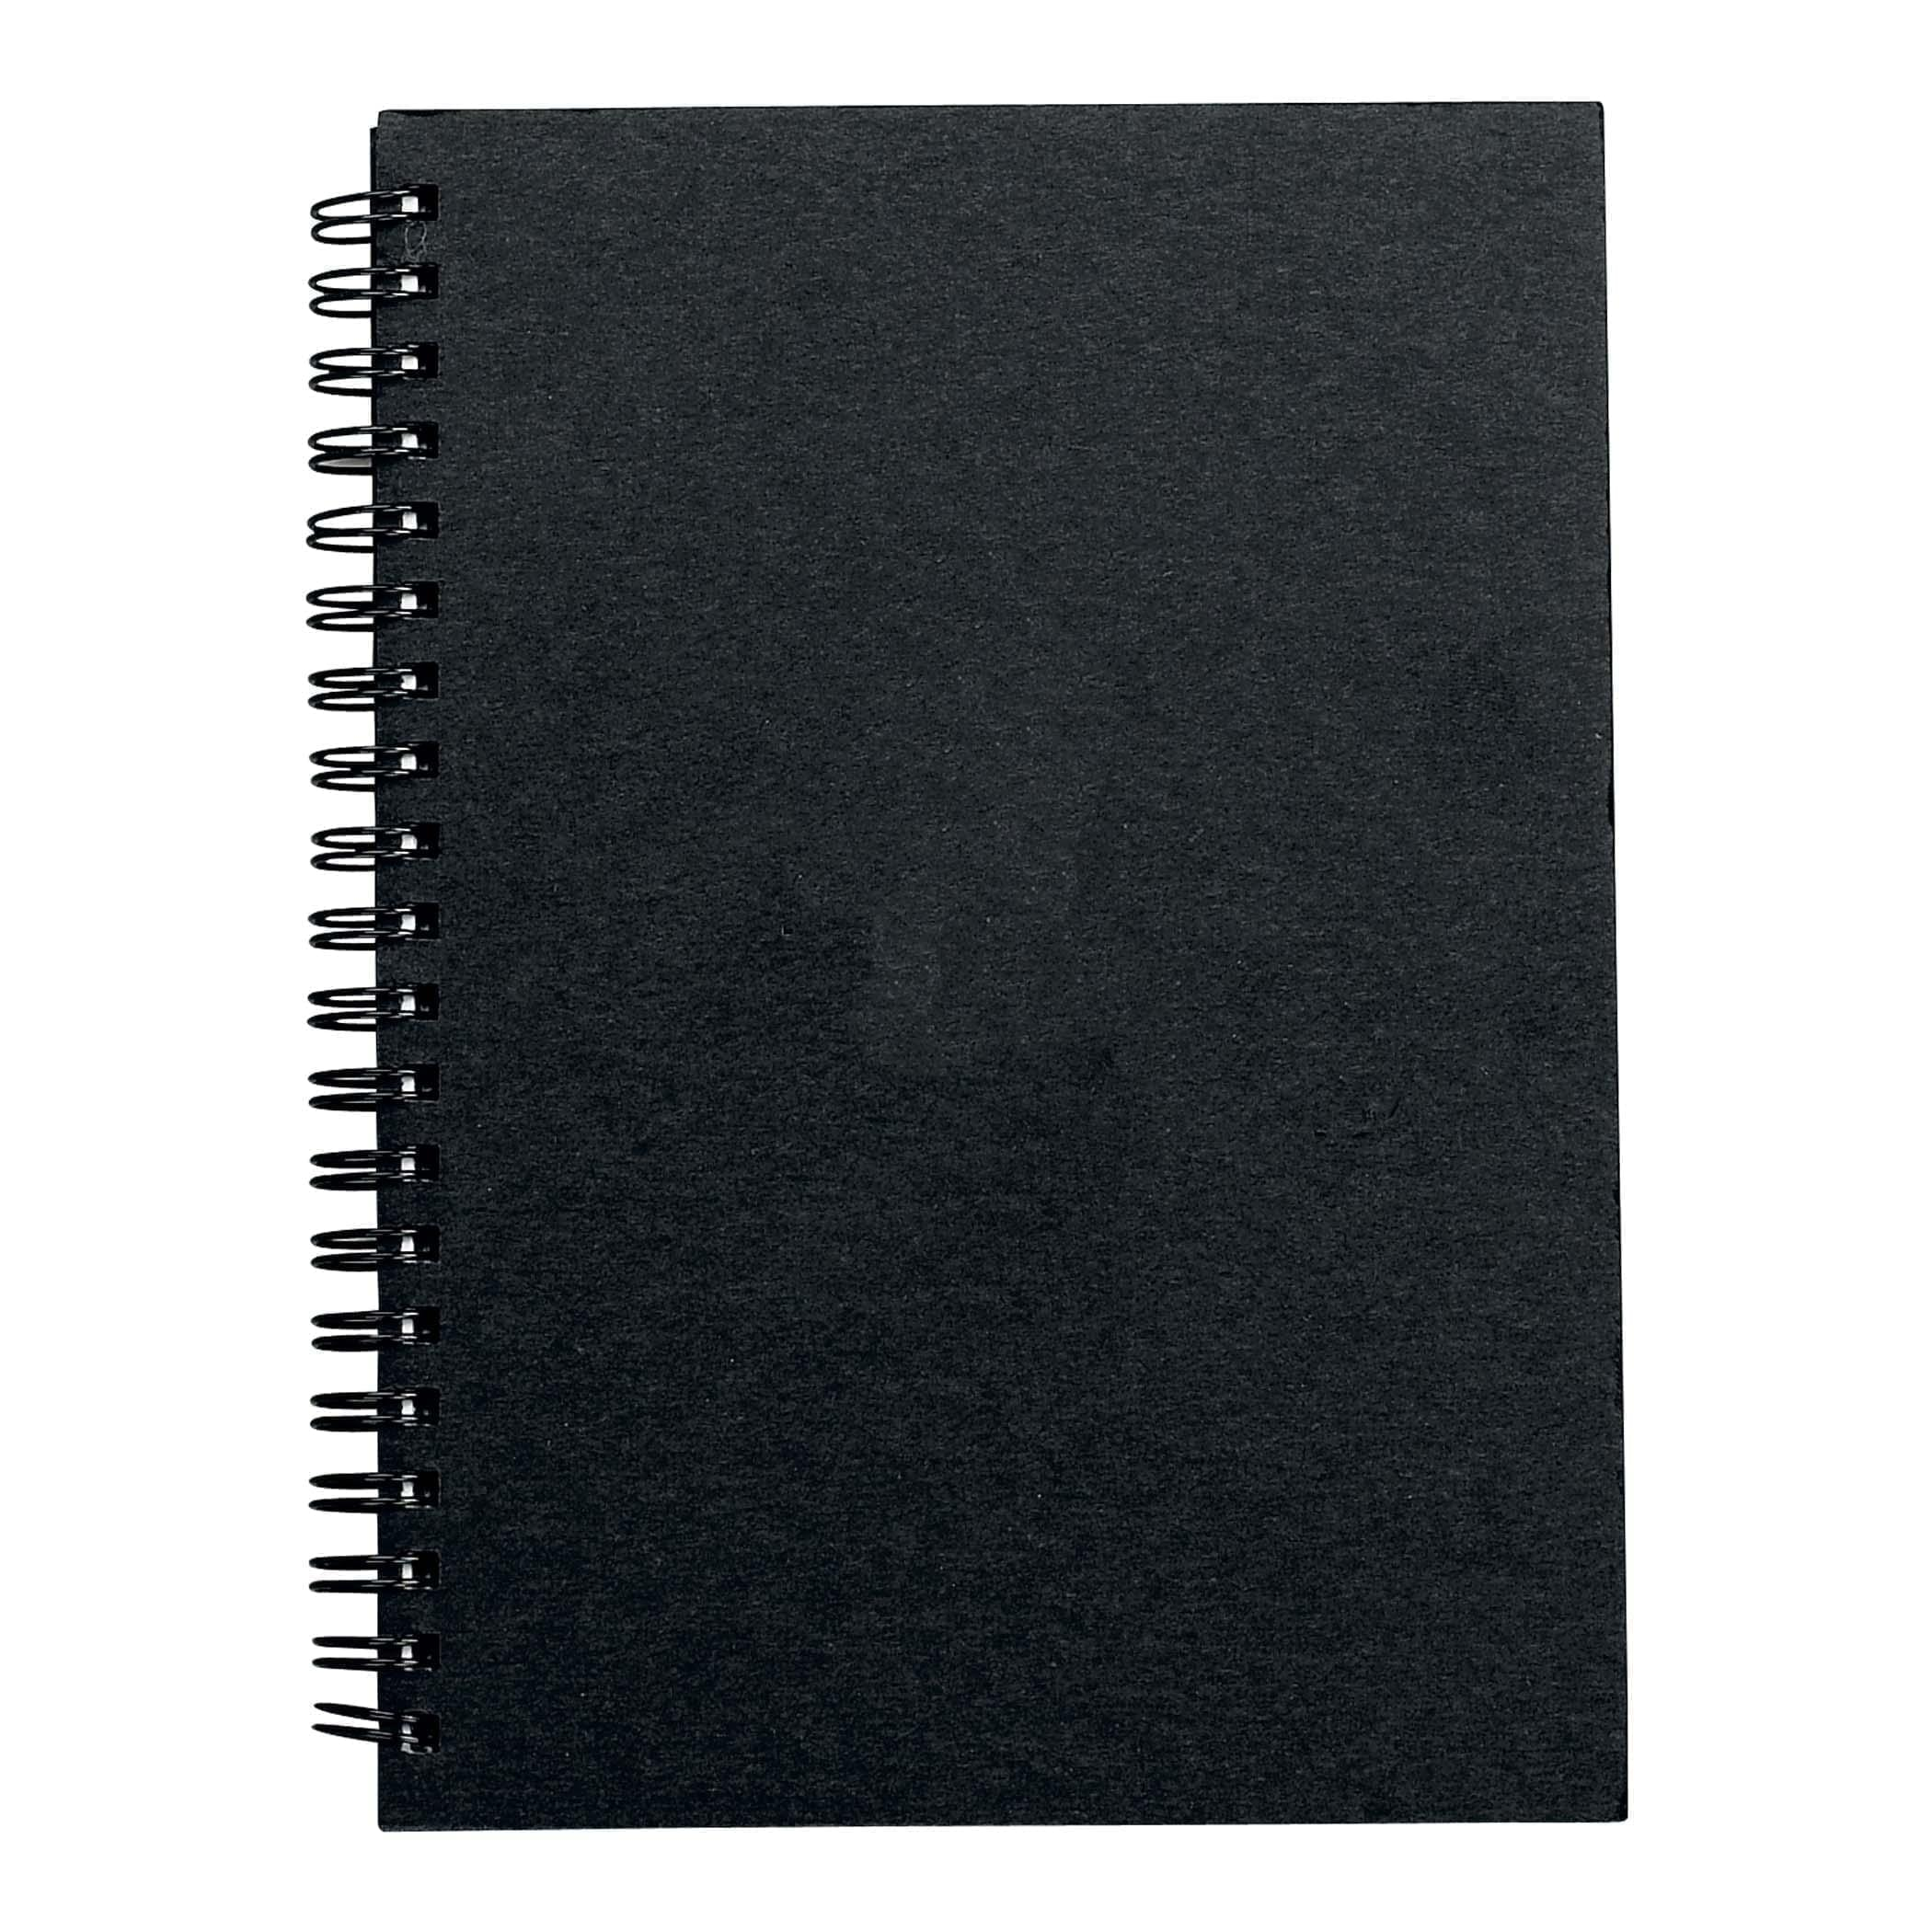 "5""x 7"" Journal with 100 Sheets-Black"